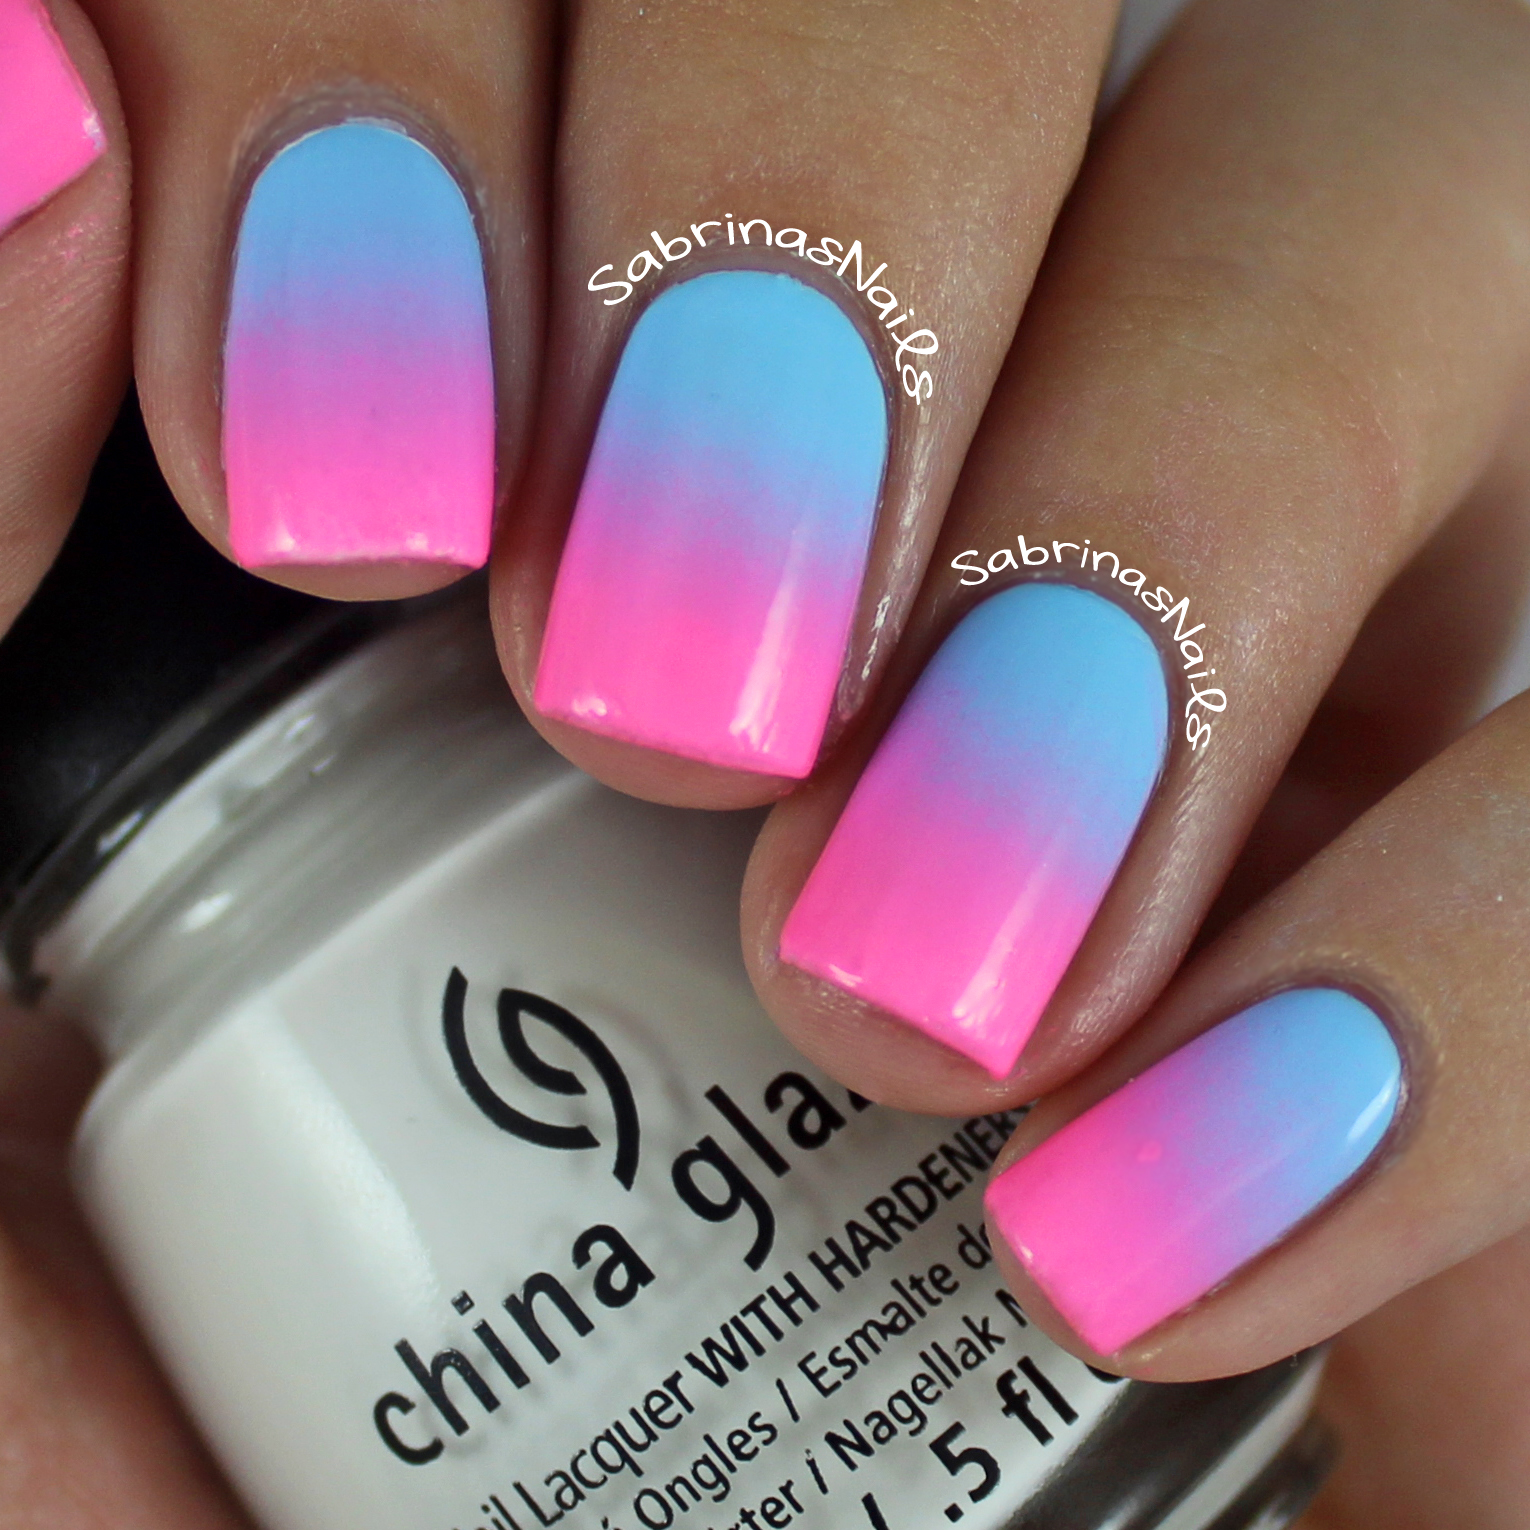 Sabrinas Nails: Cotton Candy Ombre Nails